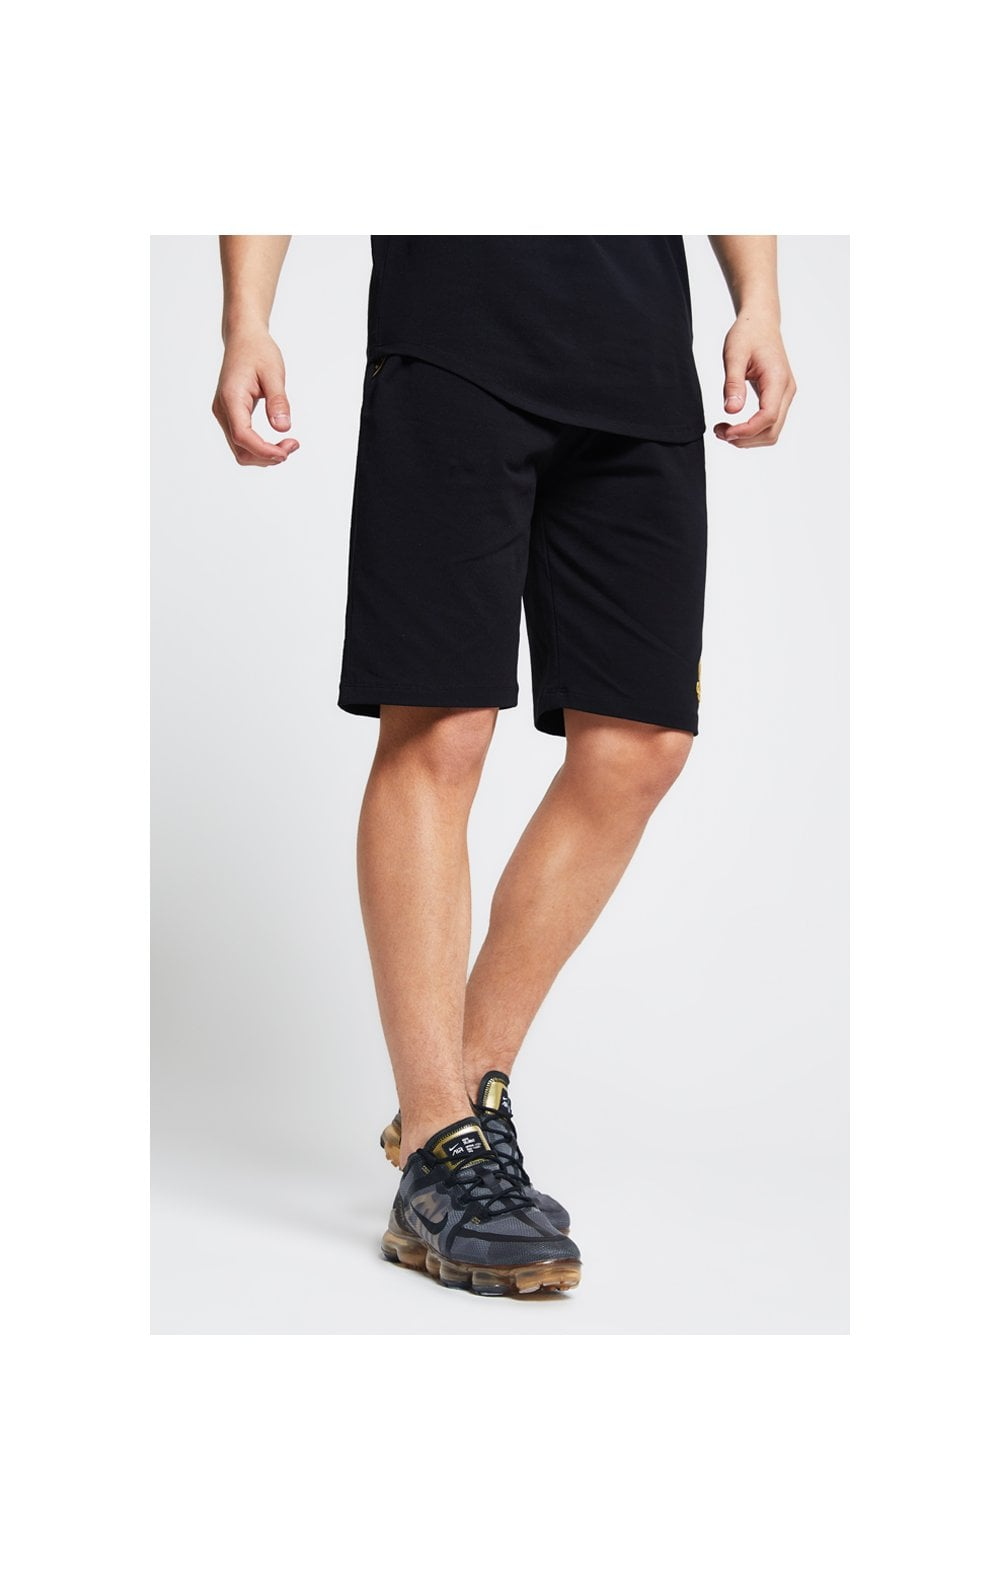 Illusive London Tape Jersey Shorts - Black (1)